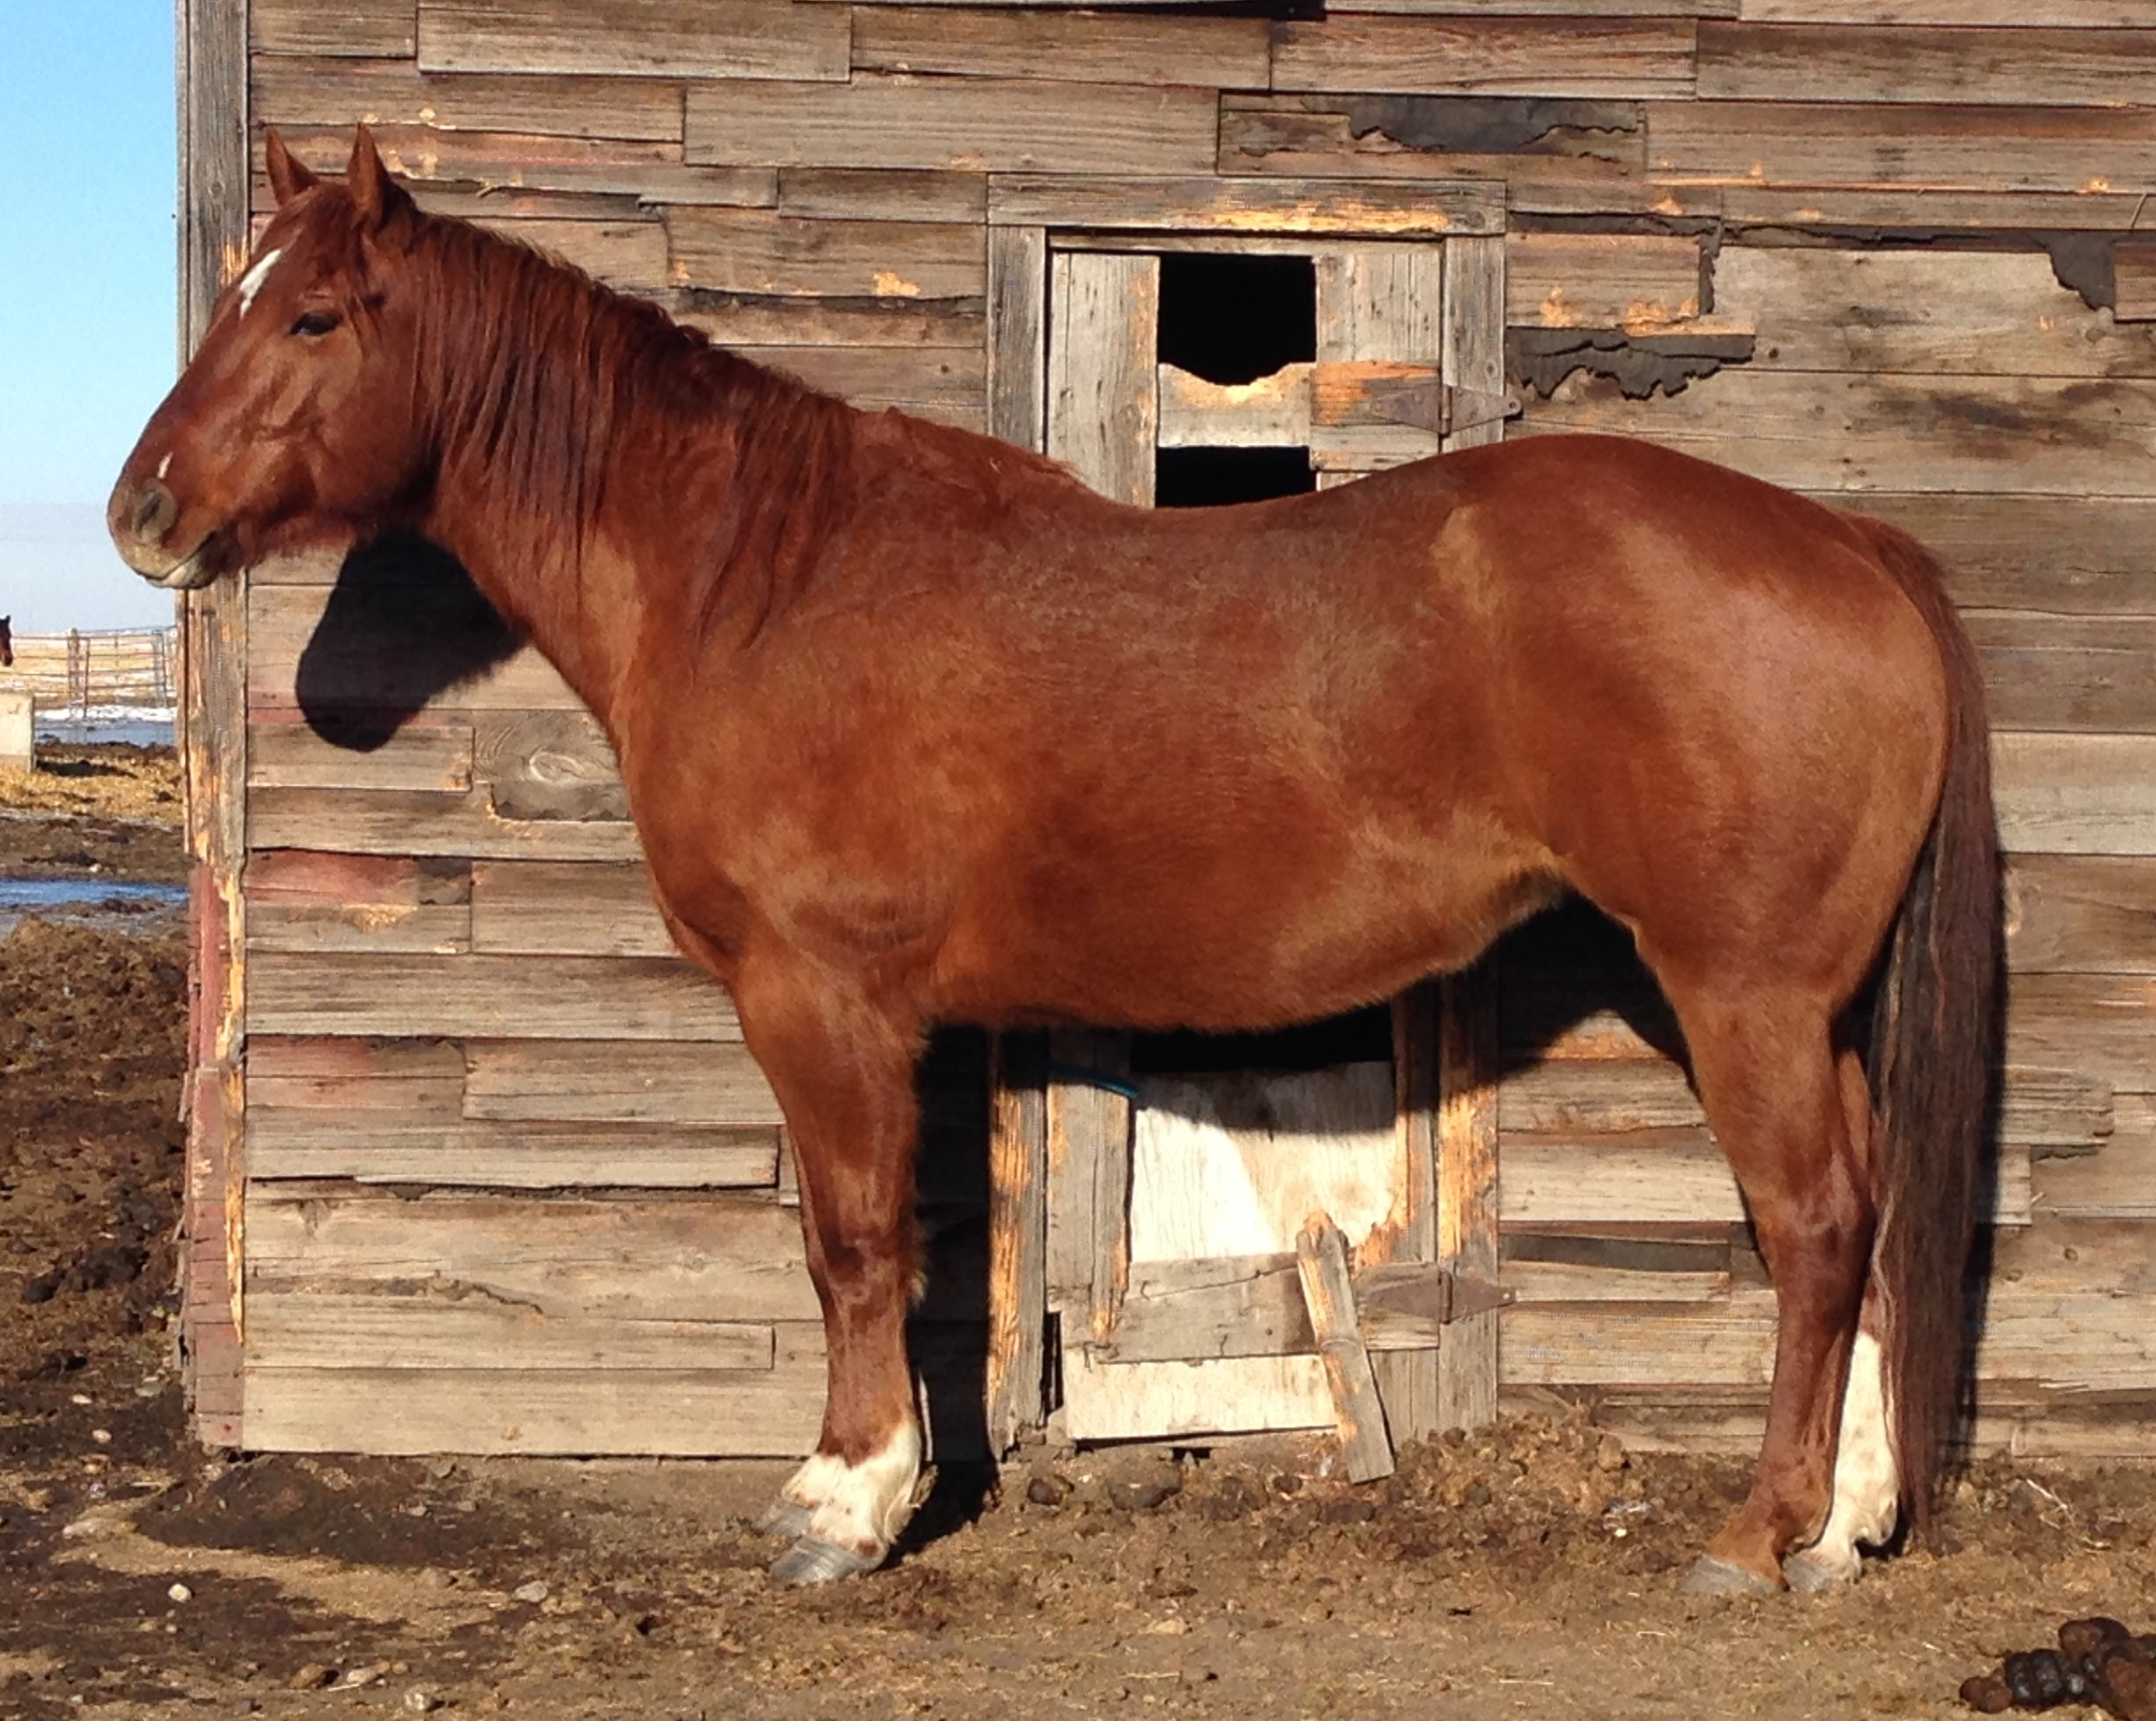 SCARLET - 2006 mare, herd matriarch, she is also used to teach volunteers about horsemanship.